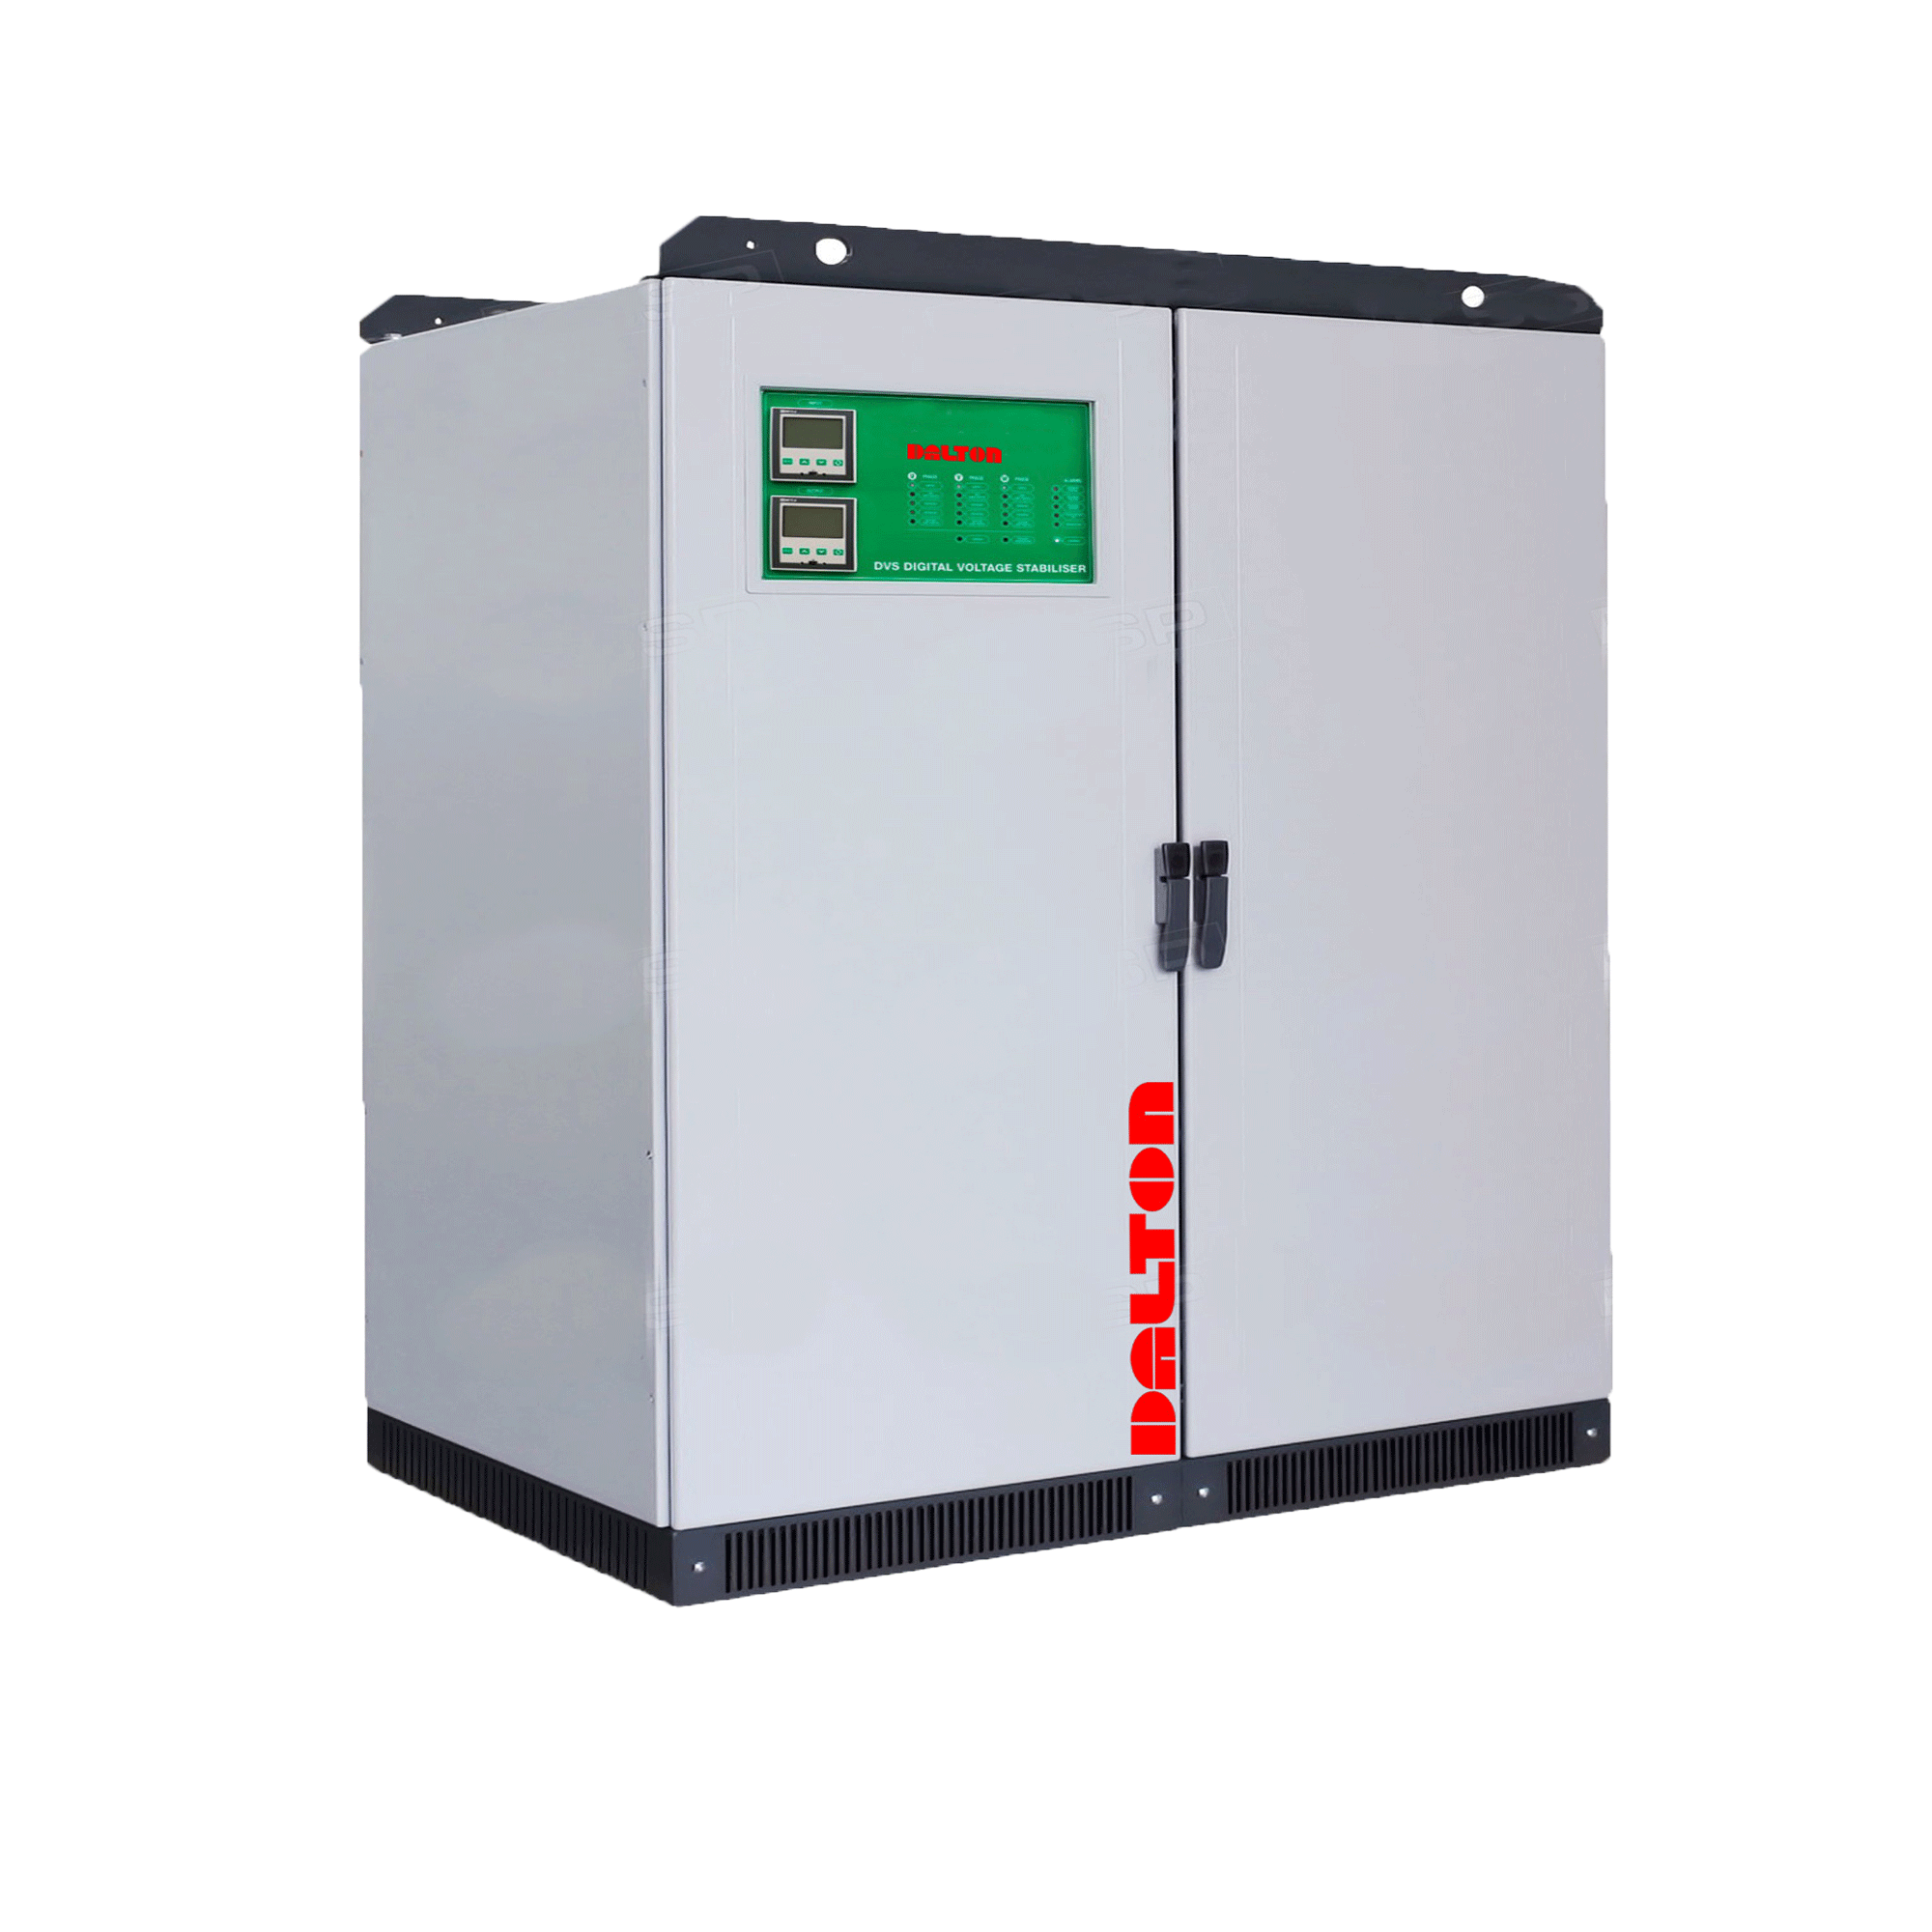 415 Volt Three Phase Converter For Home In The United Kingdom Manual Guide